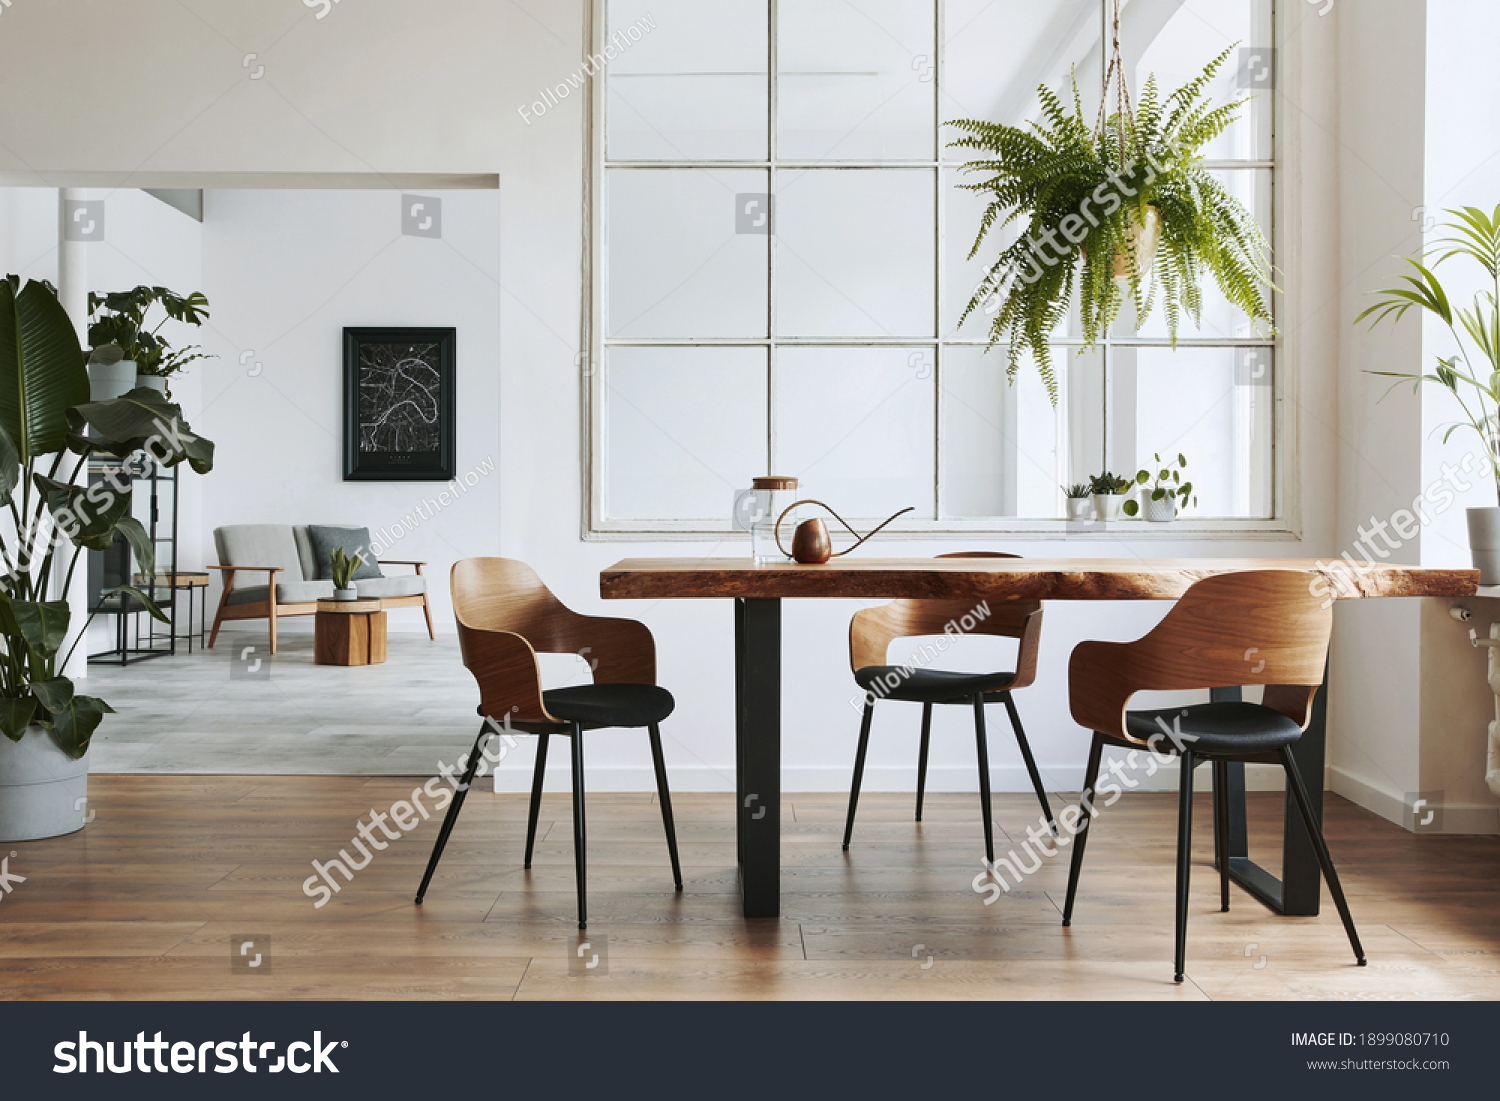 Stylish and botany interior of dining room with design craft wooden table, chairs, a lof of plants, window, poster map and elegant accessories in modern home decor. Template. #1899080710